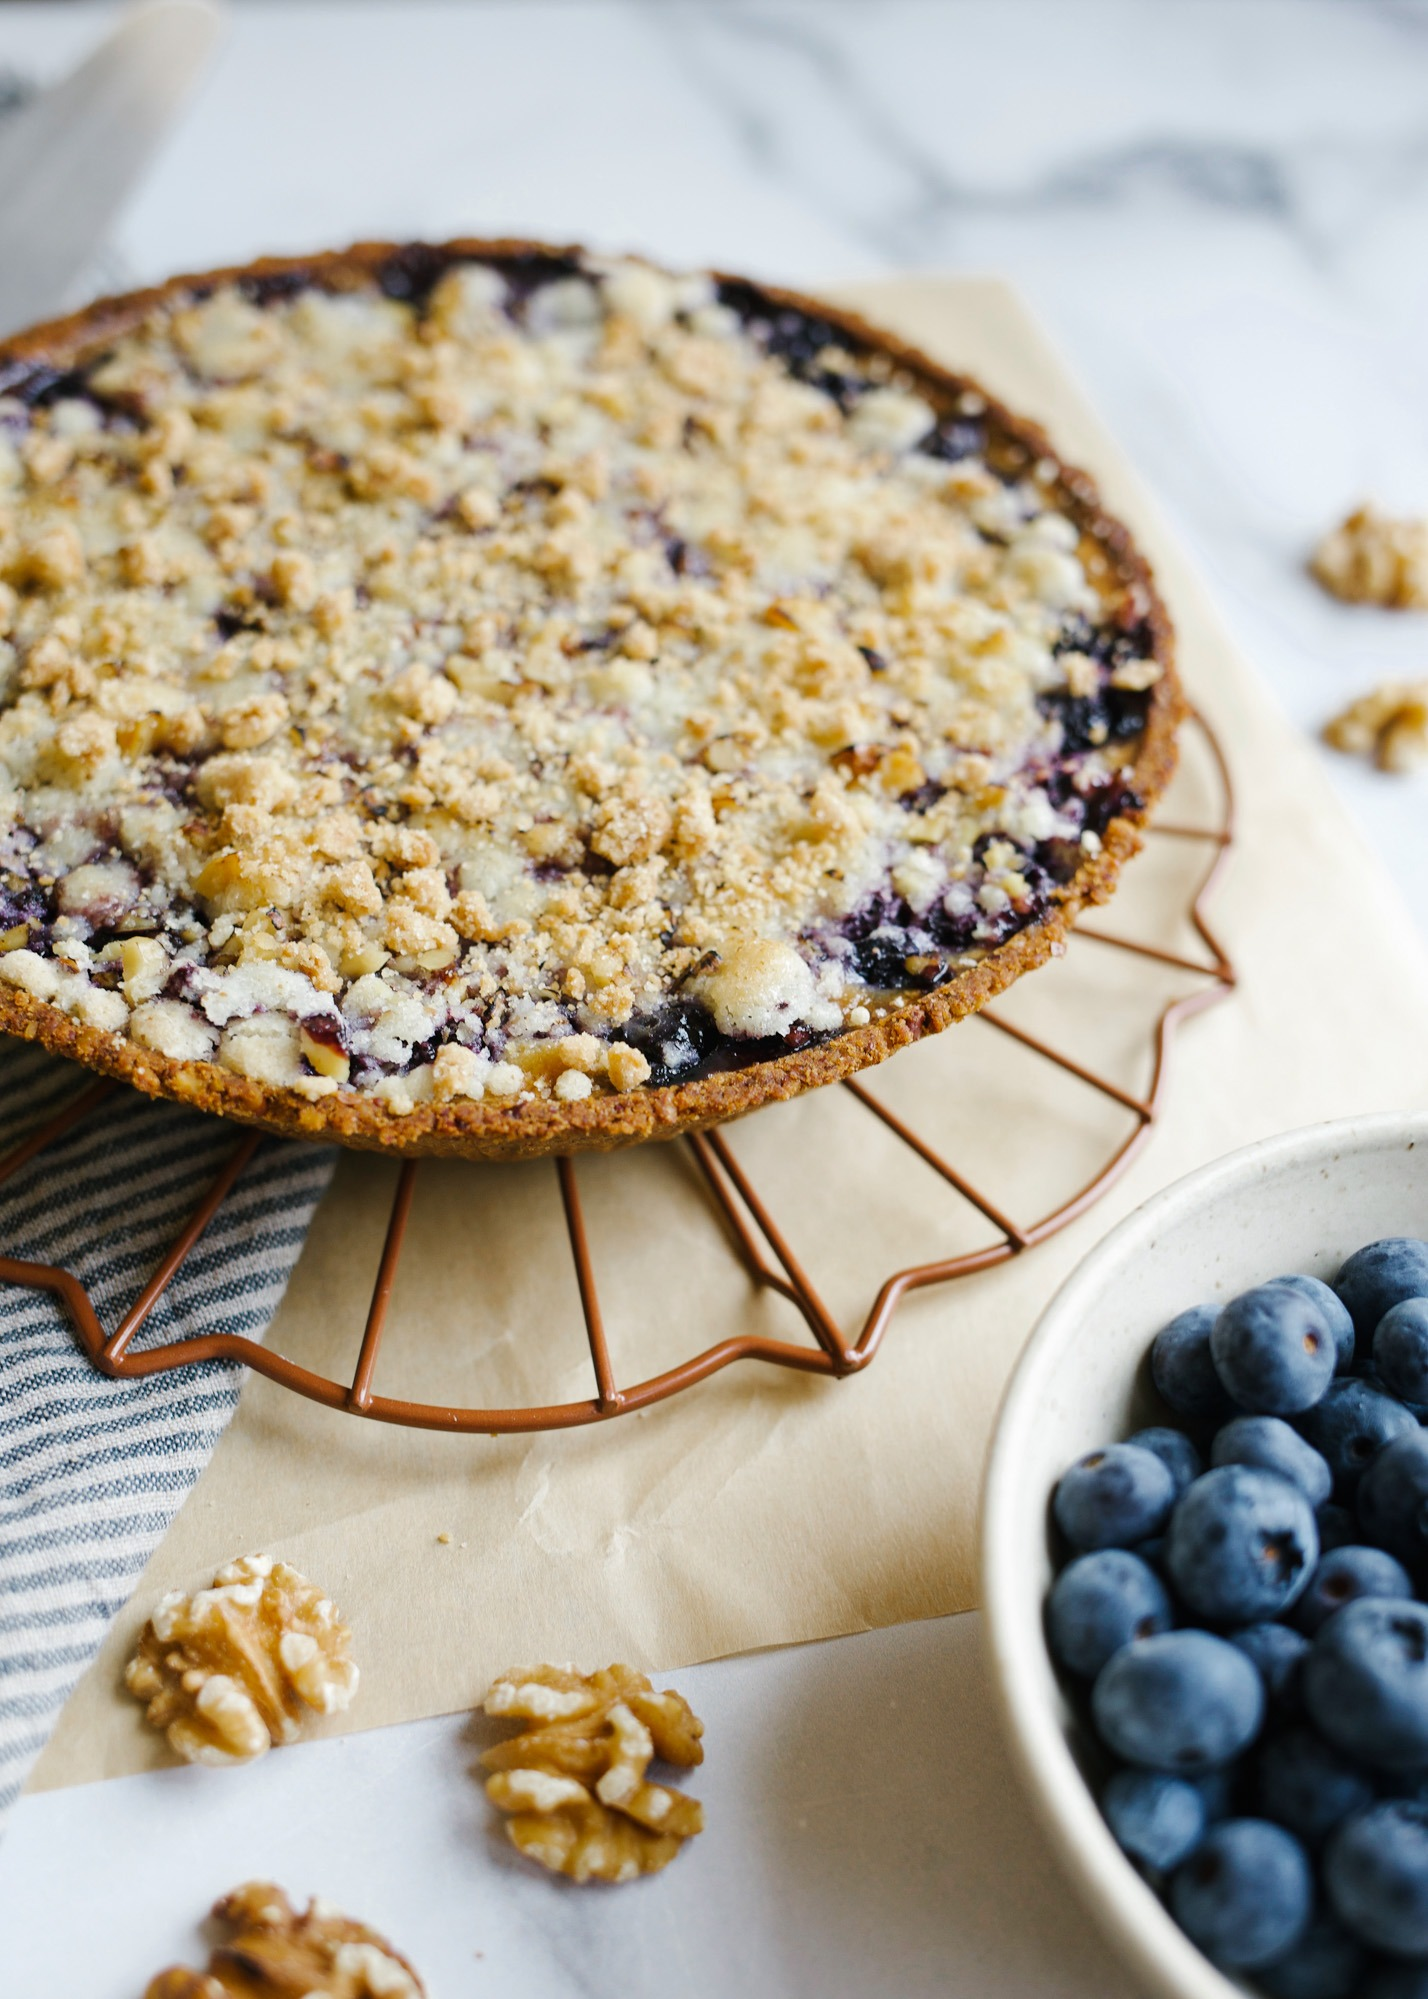 Blueberry Sour Cream Pie. This is a walnut pie crust made with a sweet sour cream filling and fresh cinnamon scented blueberries. The crumb topping adds flavor and texture as well as extra walnuts! Use a ready made crust and this simple pie has less than 10 ingredients and 10 minutes prep time. Find this simple summer recipe on thewoodandspoon.com